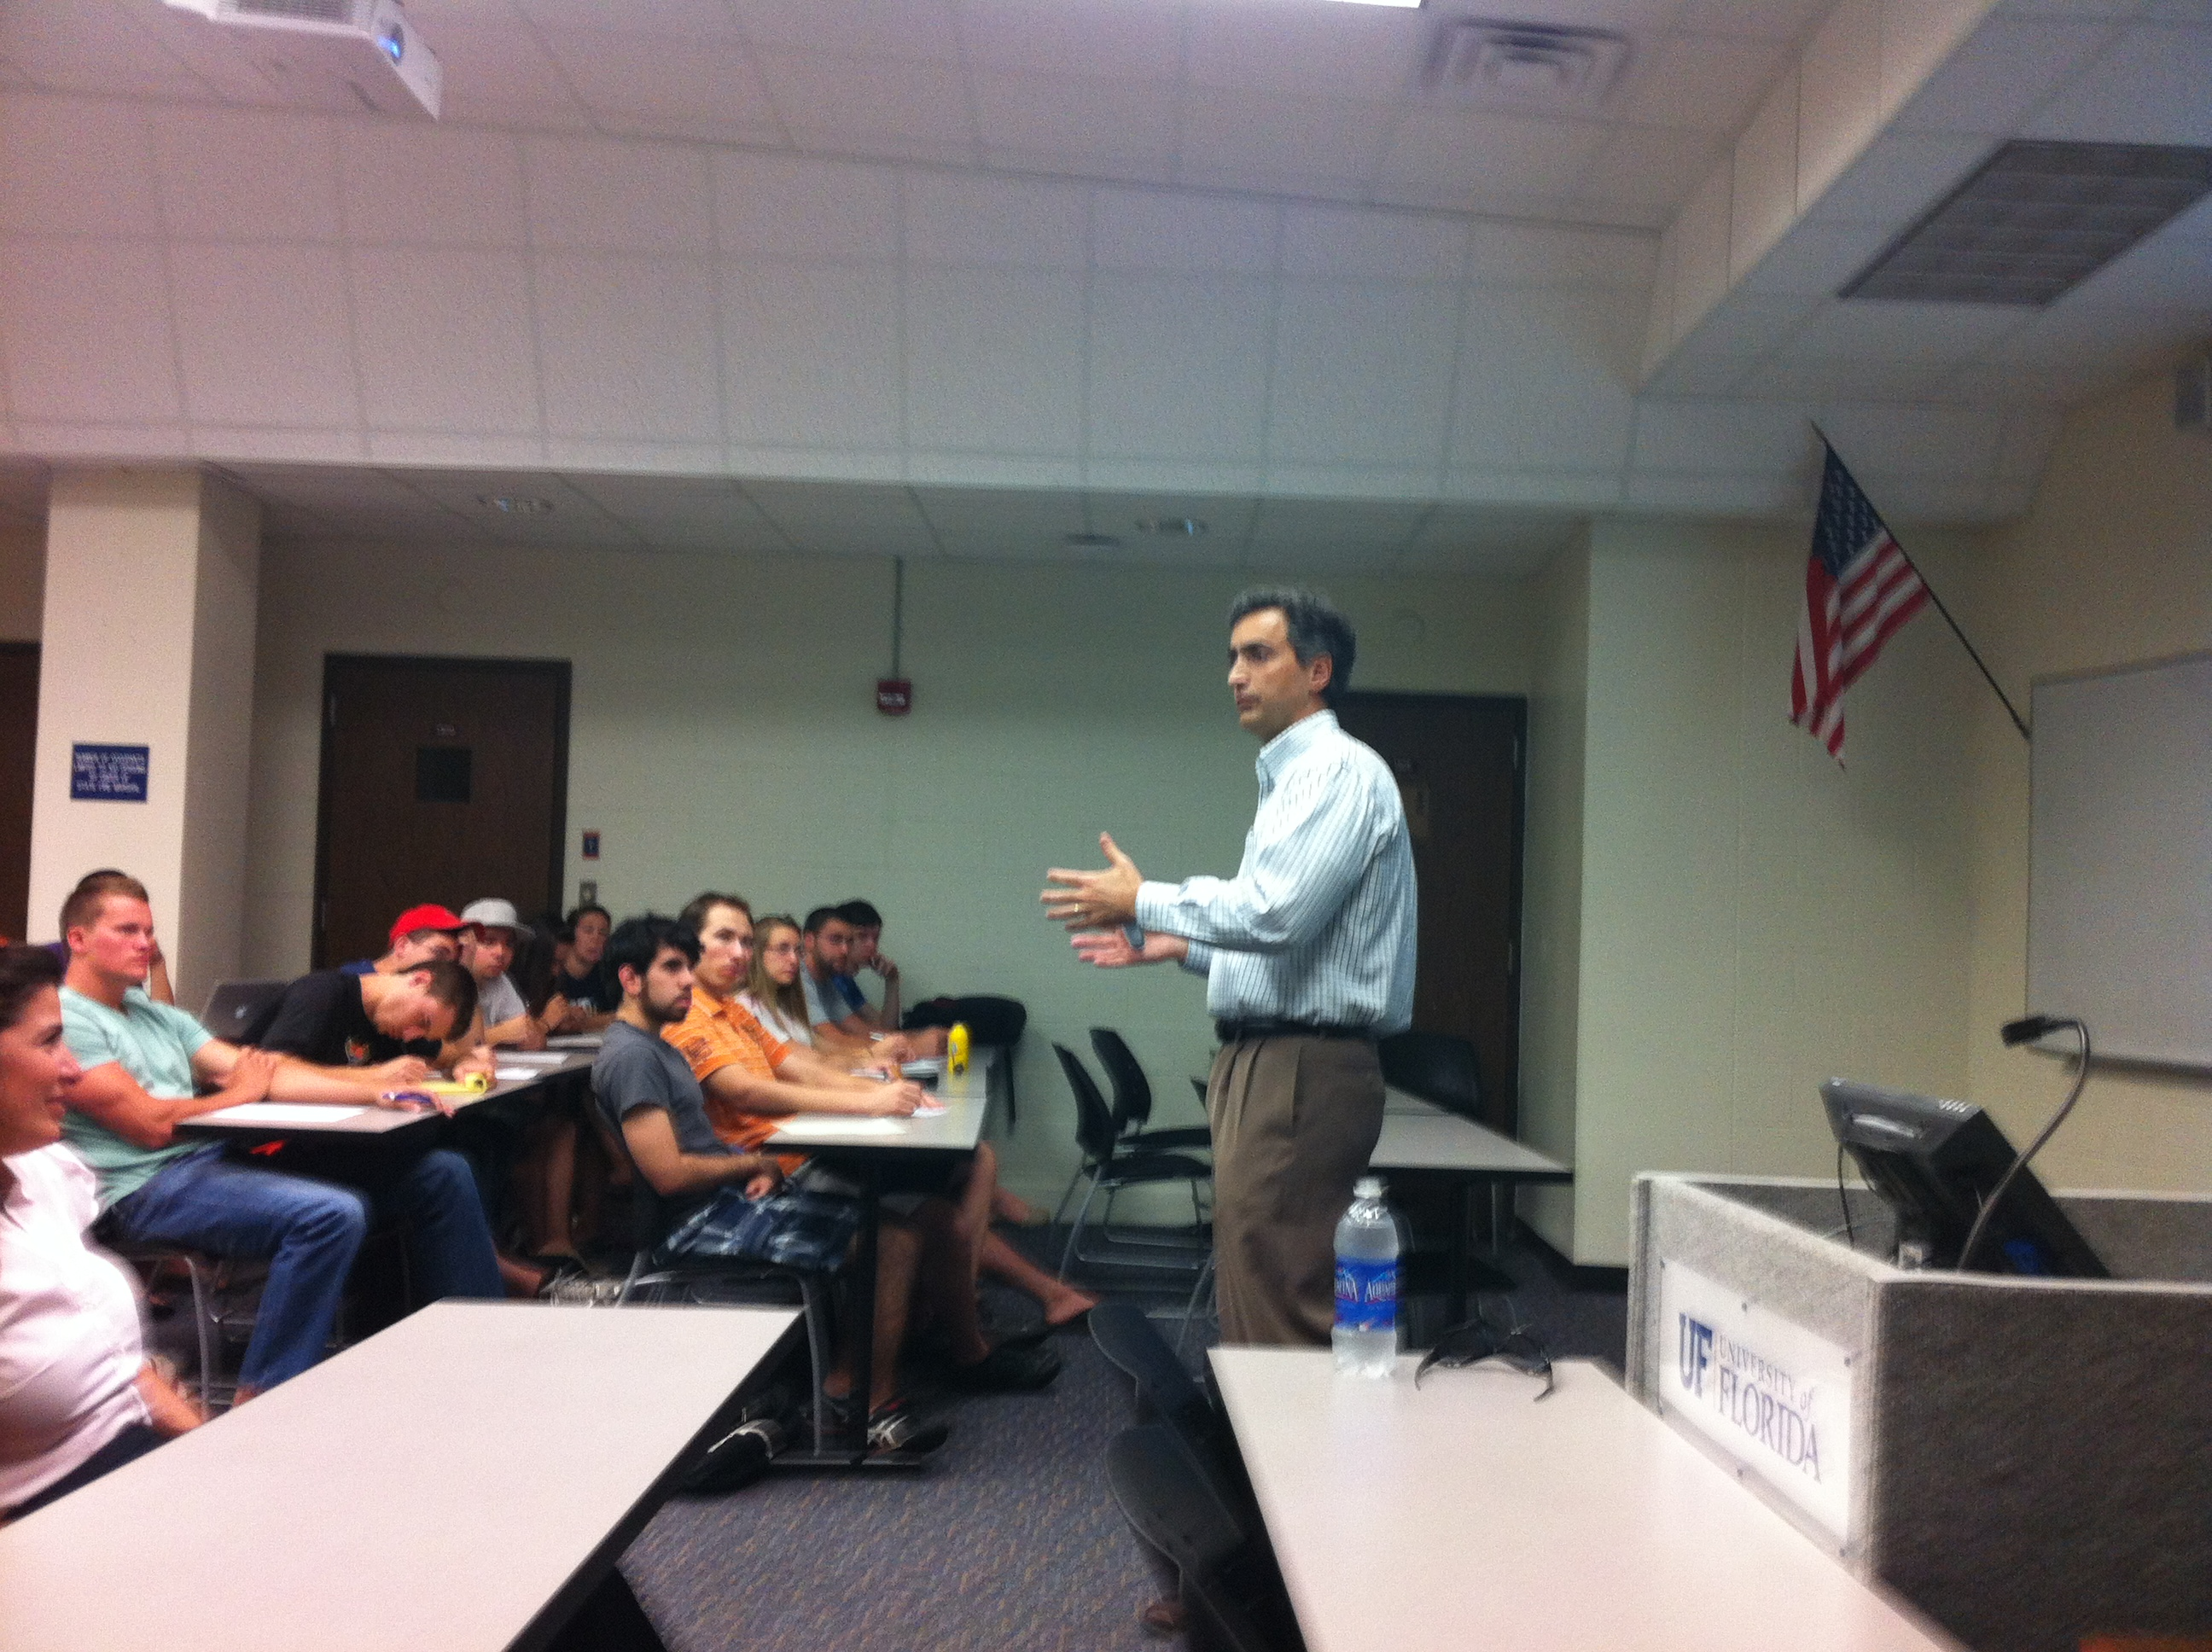 Dr. Jose Nunez delivers a lecture